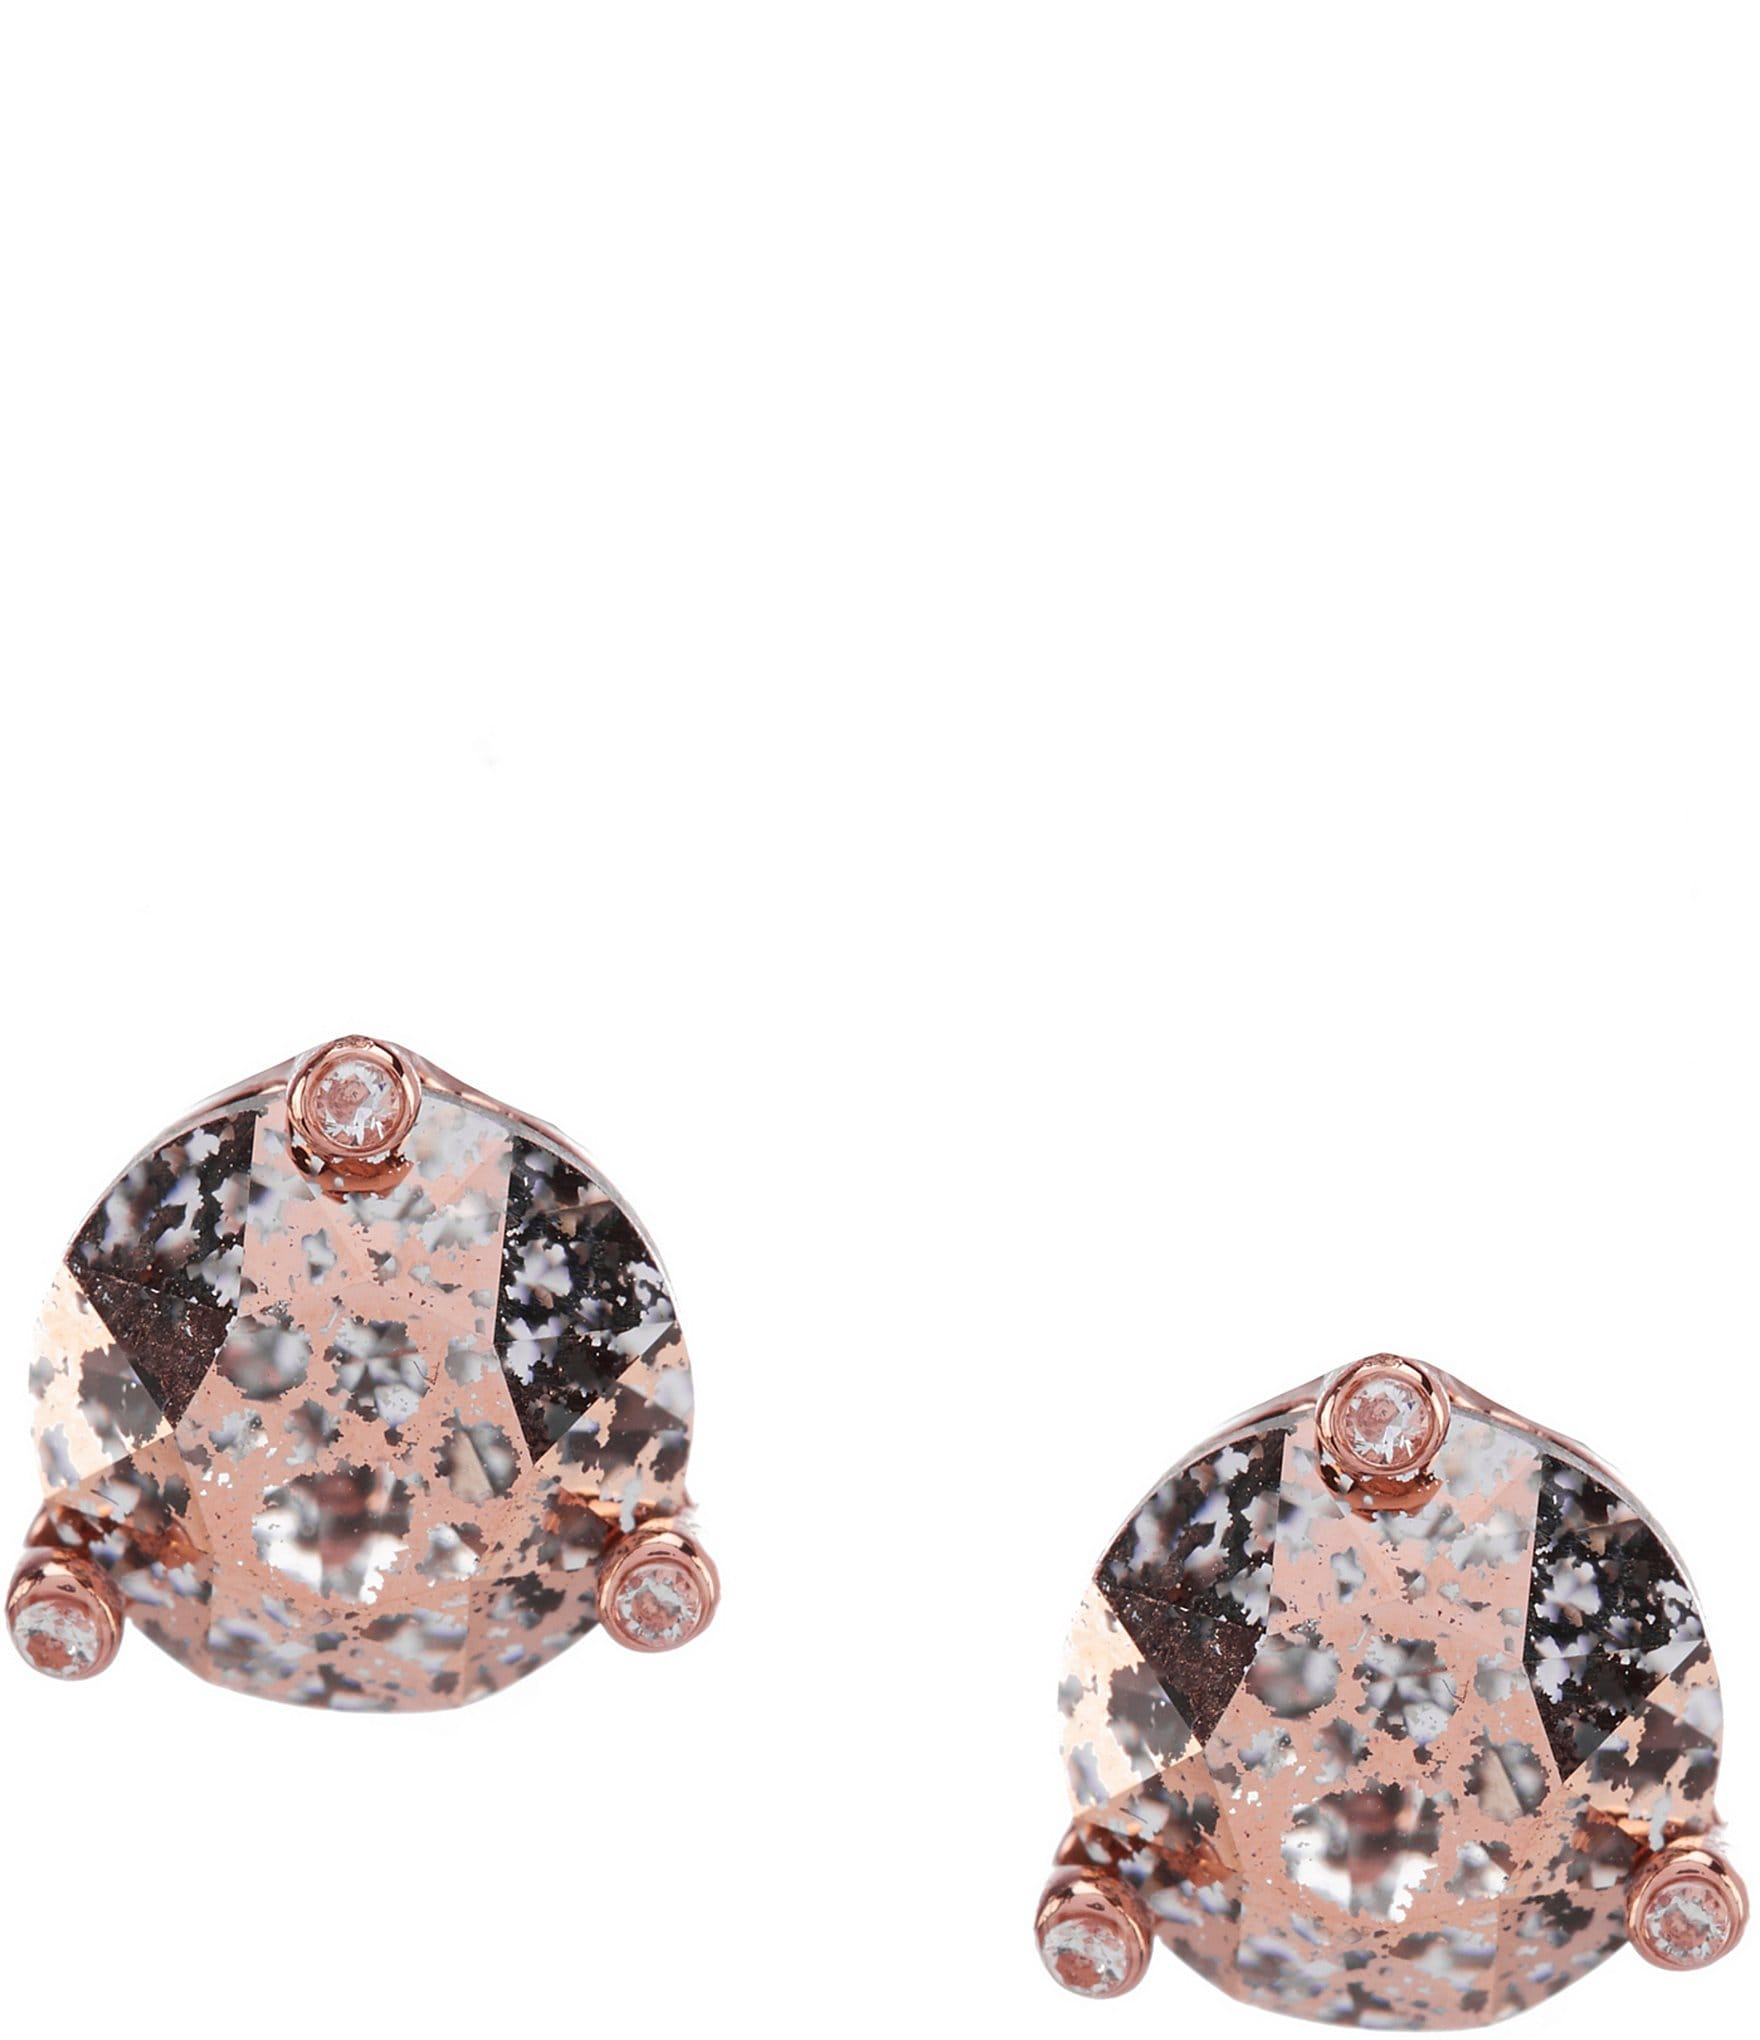 kate spade studs: Accessories: Jewelry, Watches & Sunglasses ...